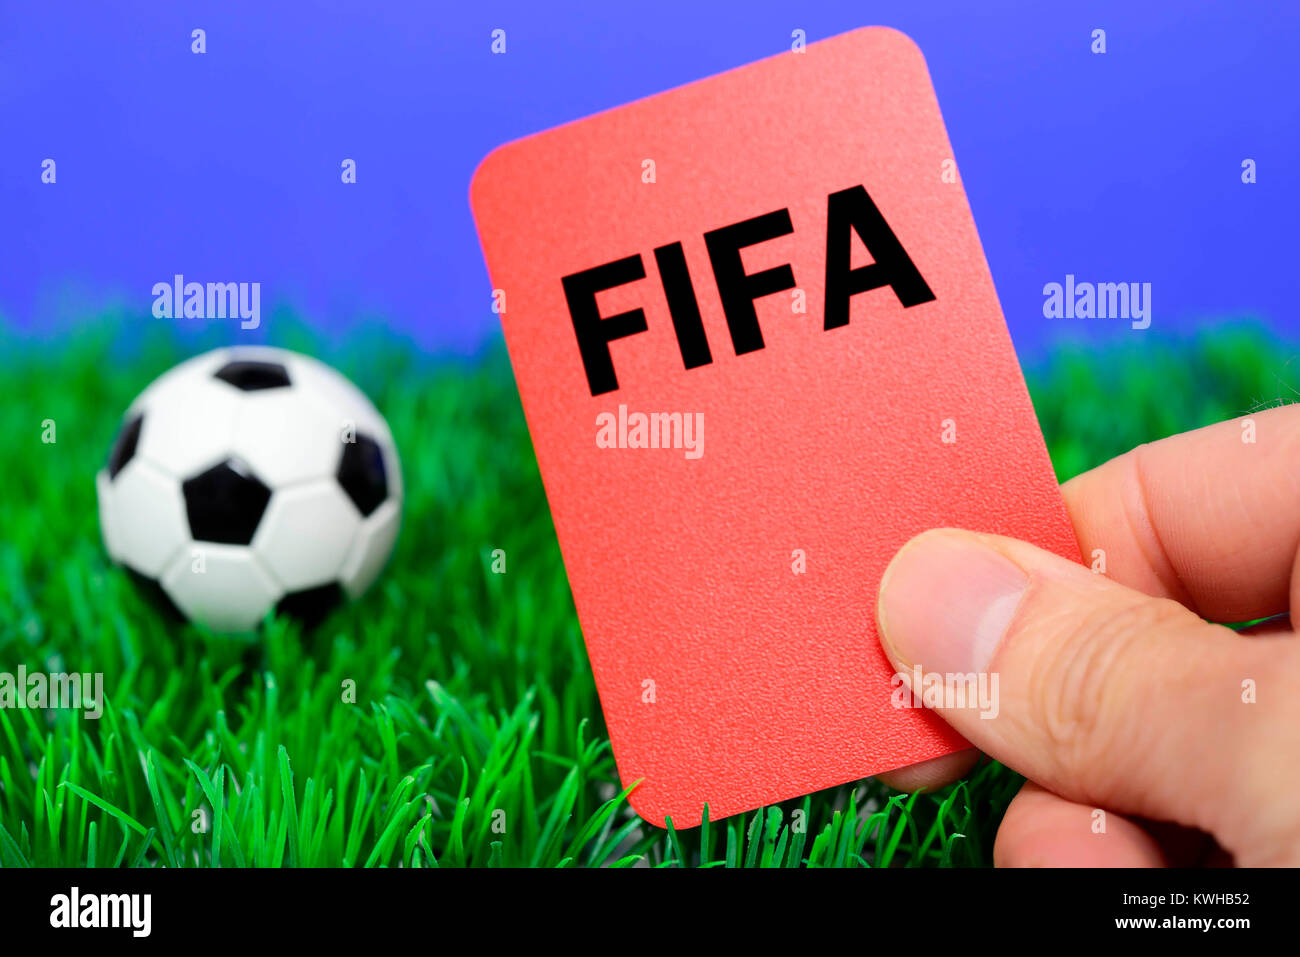 Miniature football and hand with red map, Fifa scandal, Miniaturfußball und Hand mit roter Karte, Fifa-Skandal - Stock Image